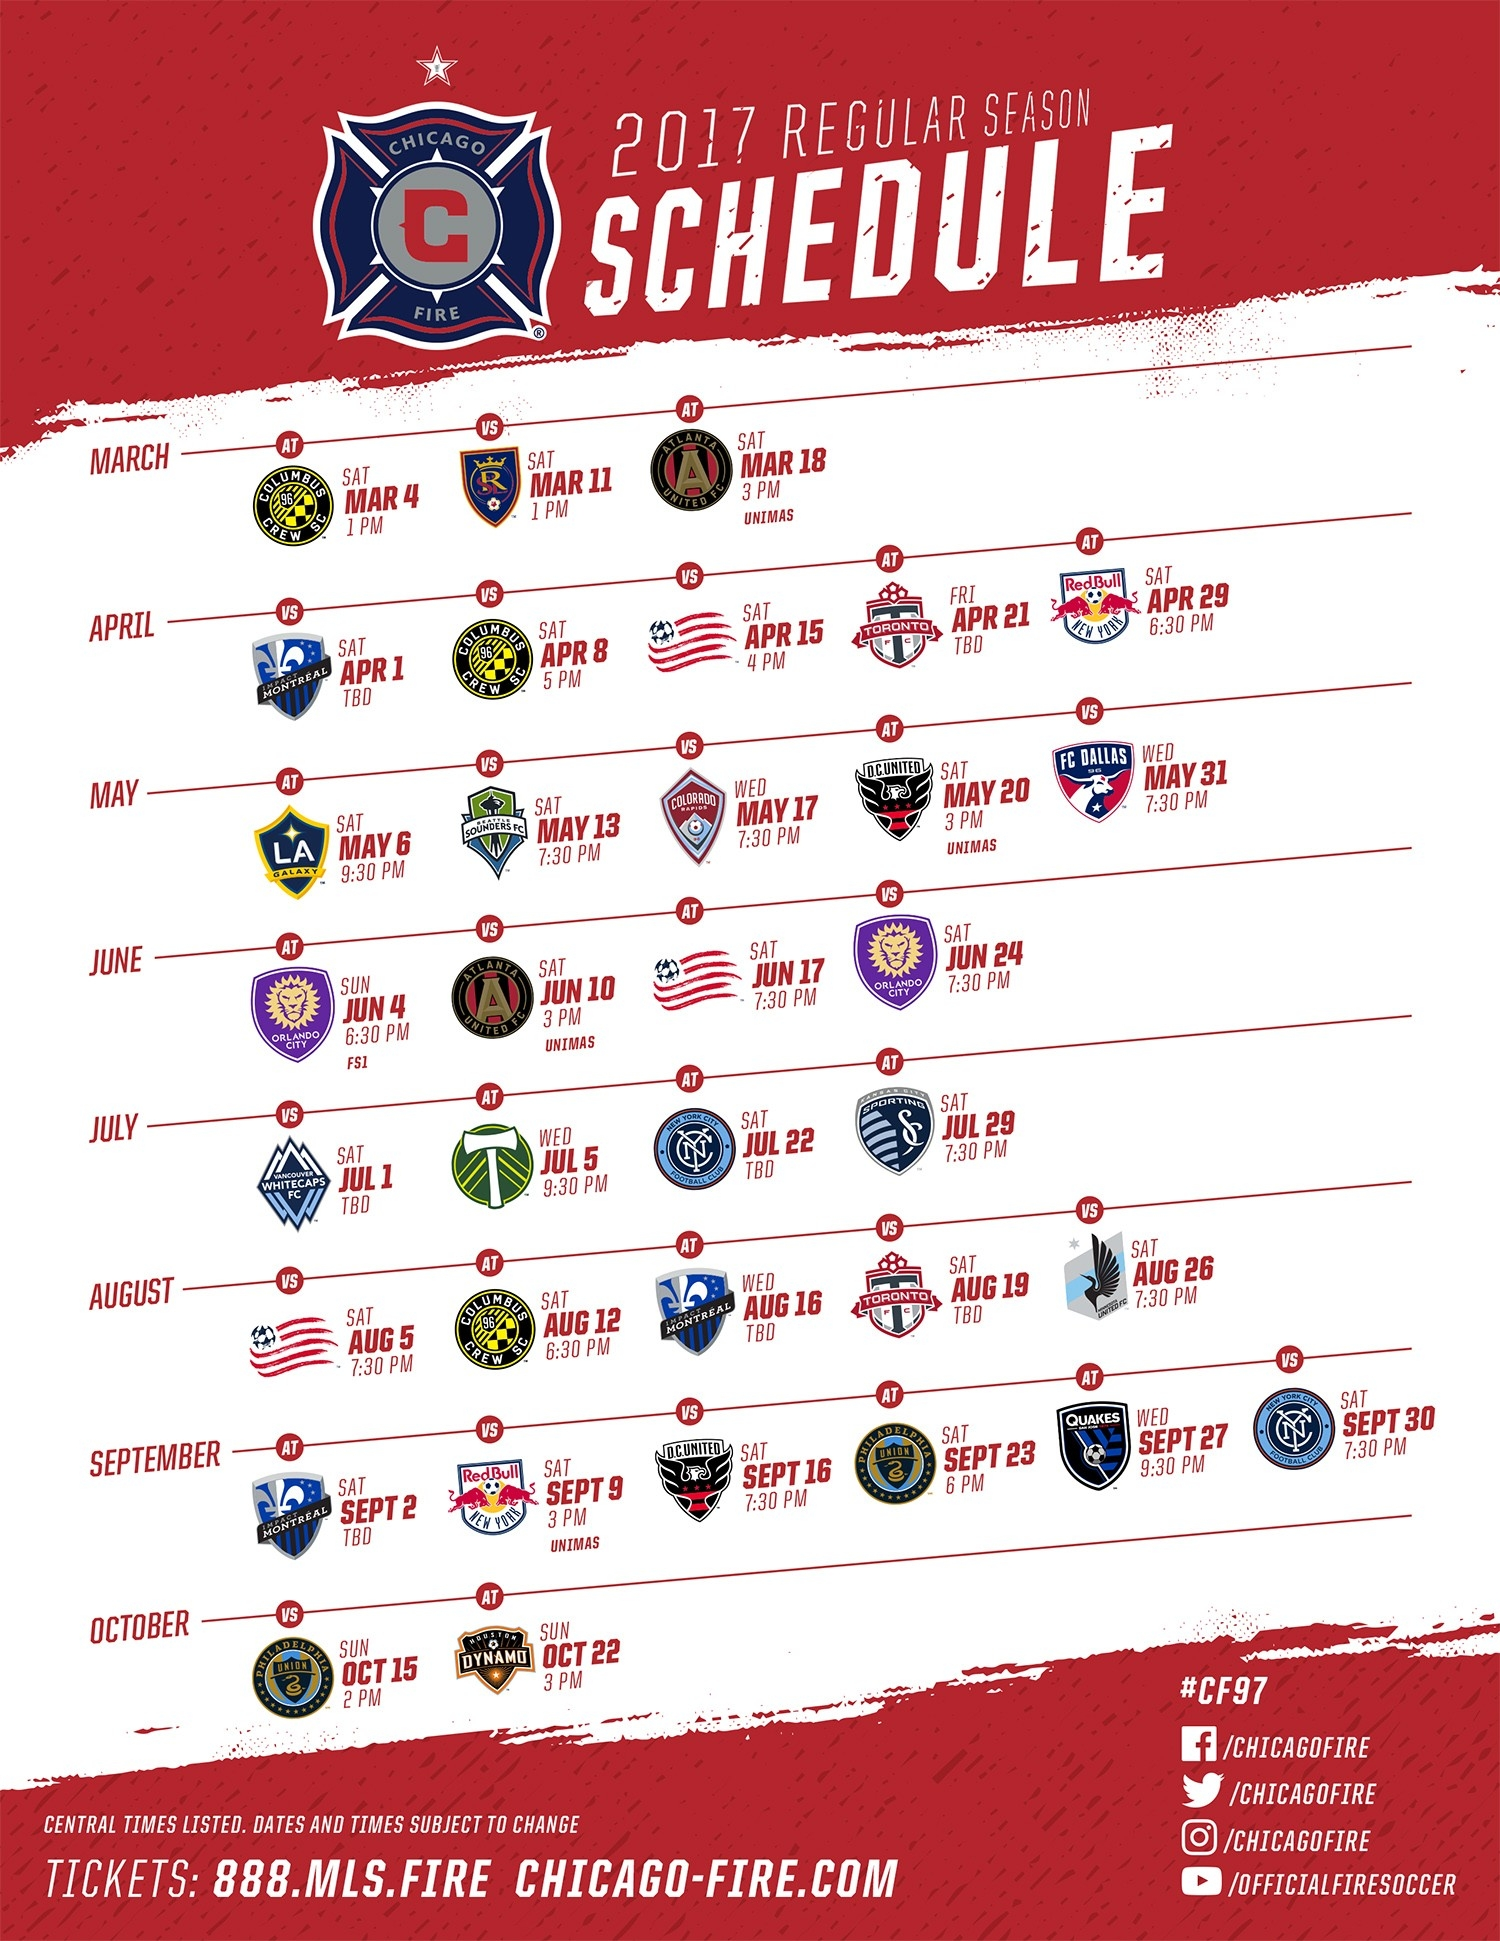 Chicago Fire Unveils 2017 Mls Regular Season Schedule | Chicago Fire within Chicago Fire Schedule 47355